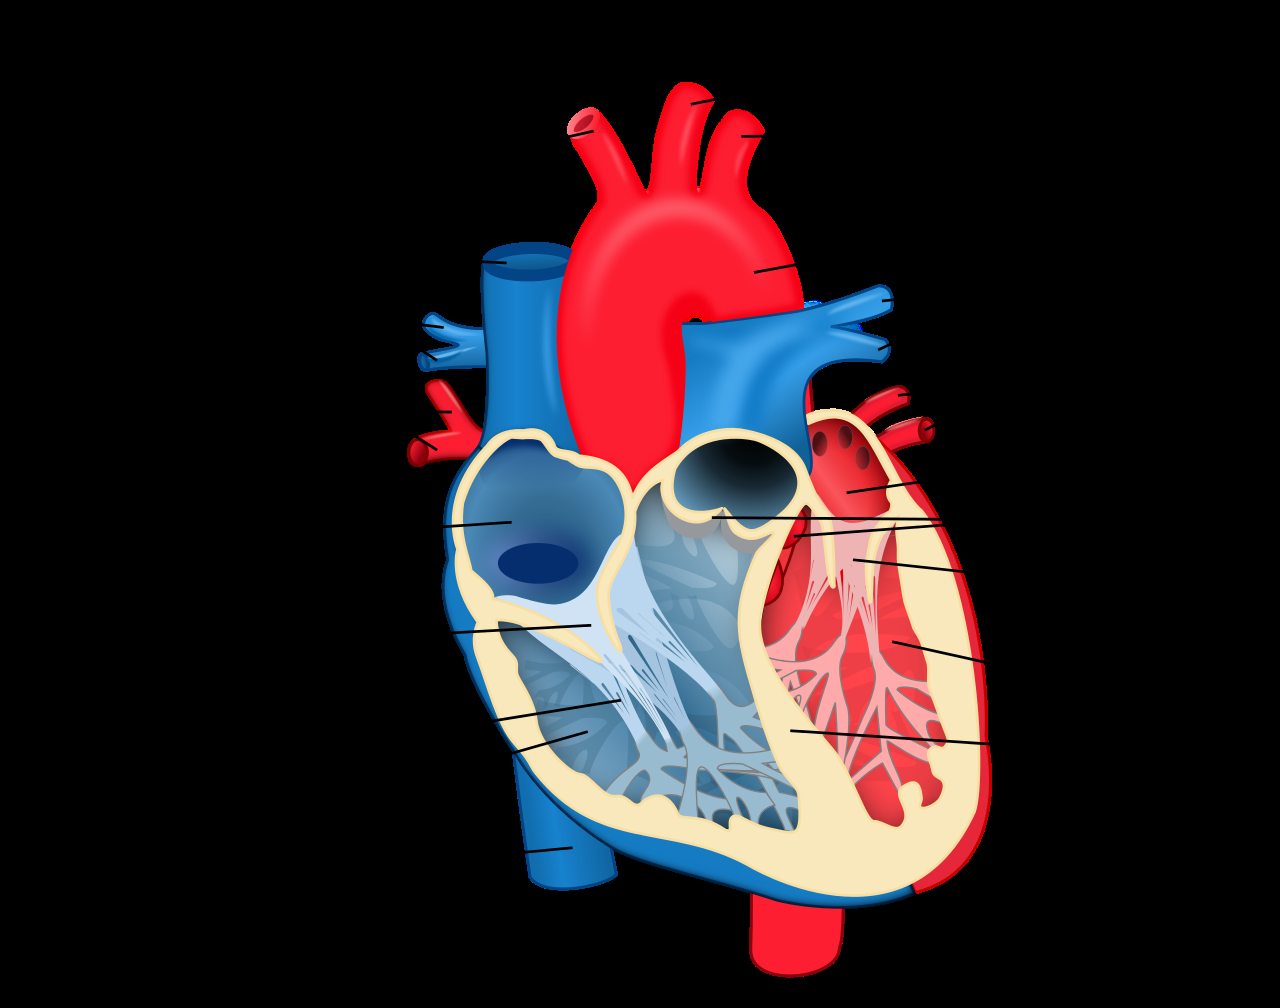 Heart Diagram Labeled